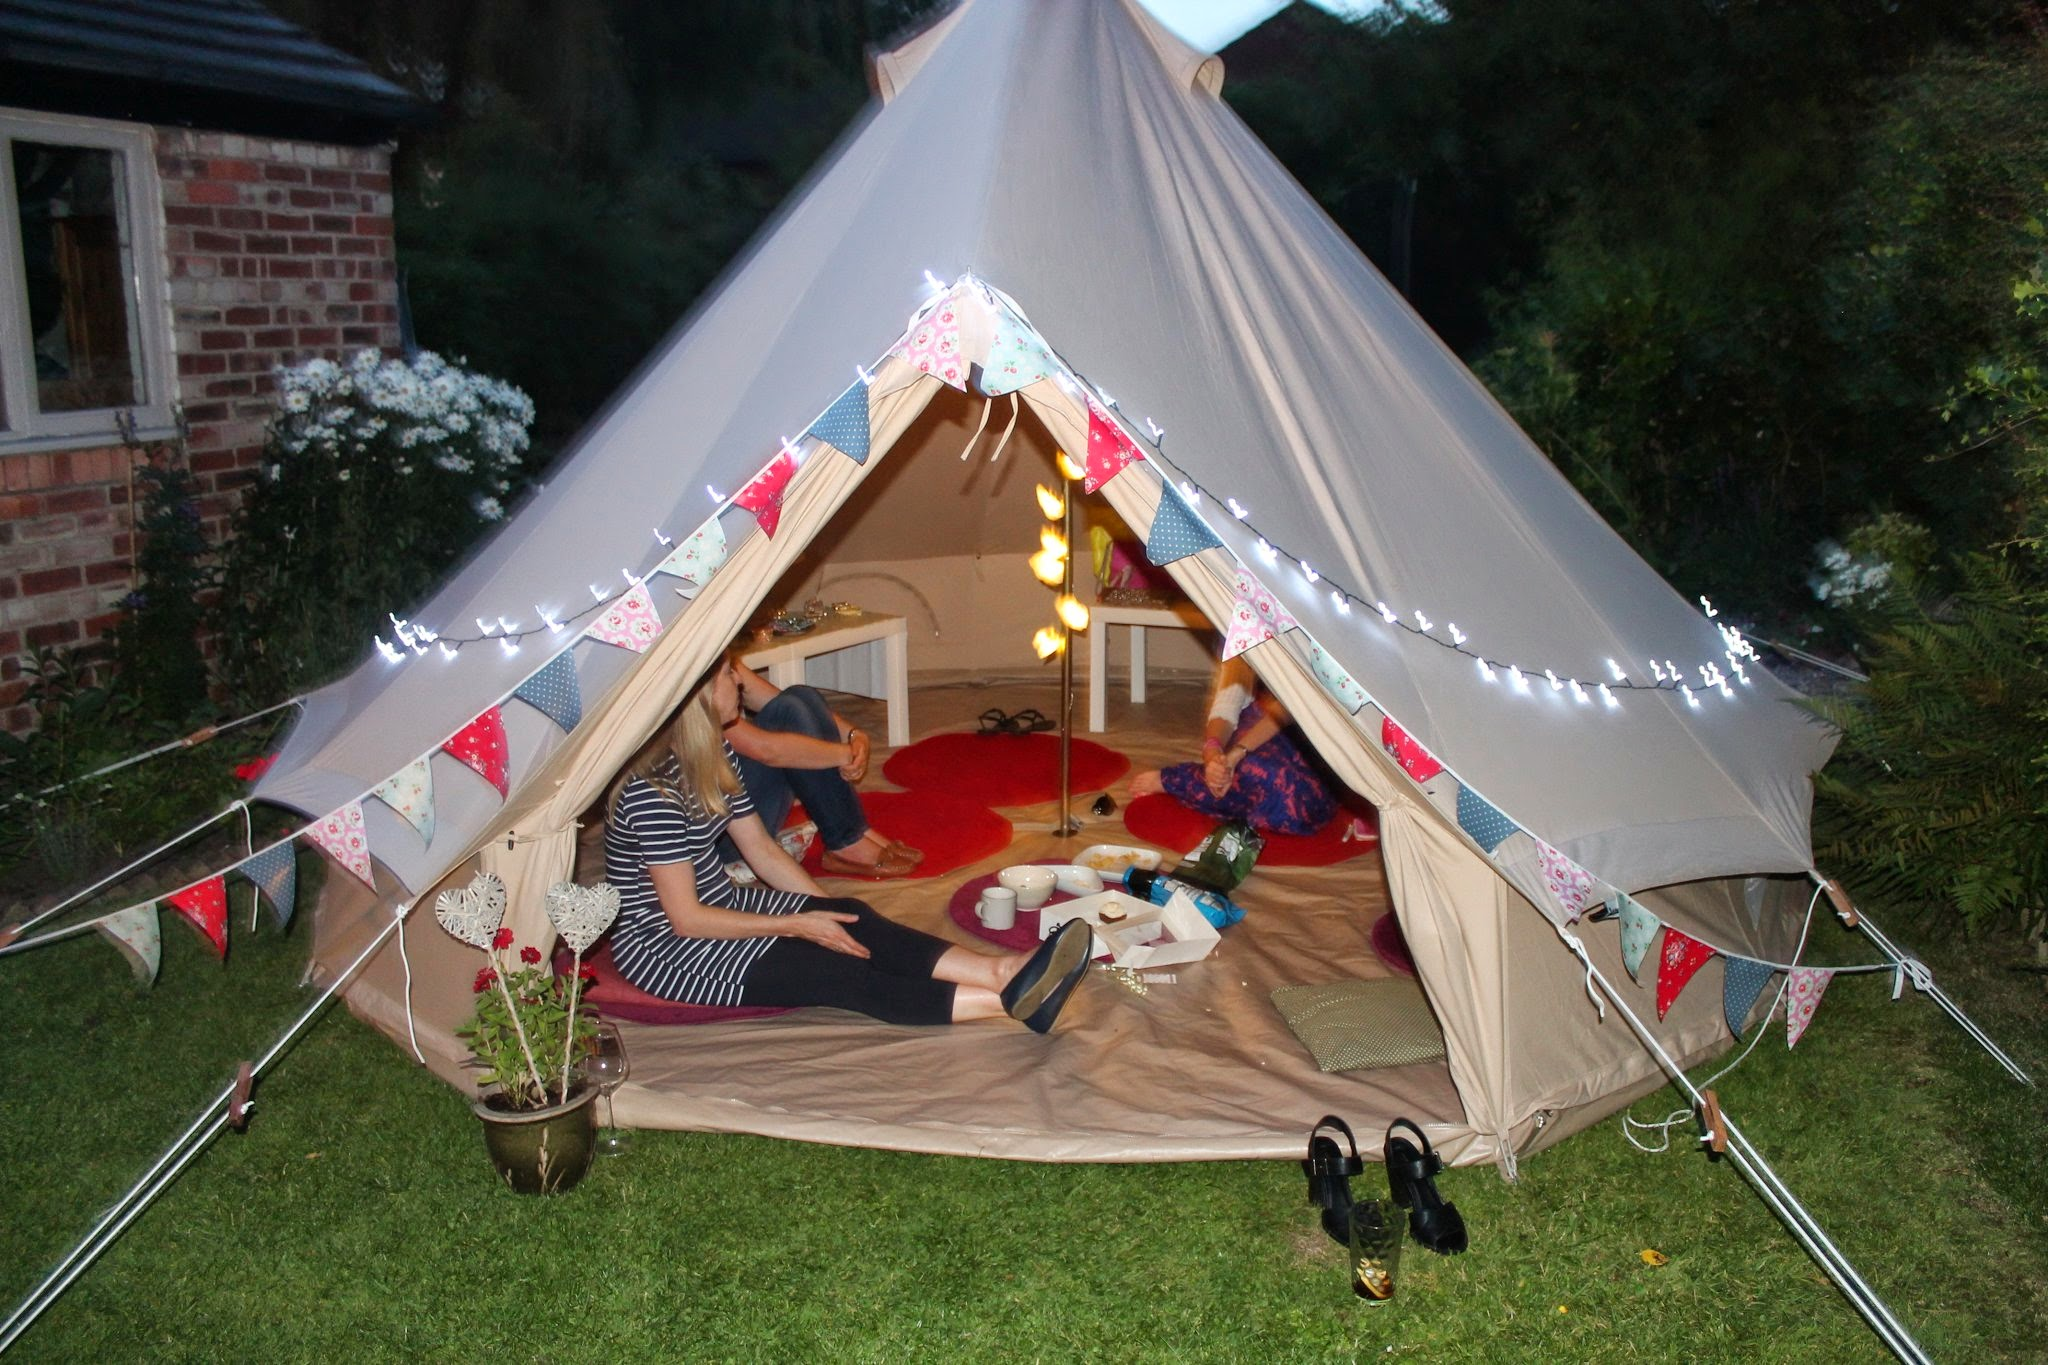 IMG_2083 IMG_2068 IMG_2022 & Bell Tent Party Events | PLEASE NOTE NEW WEBSITE u2013 www ...